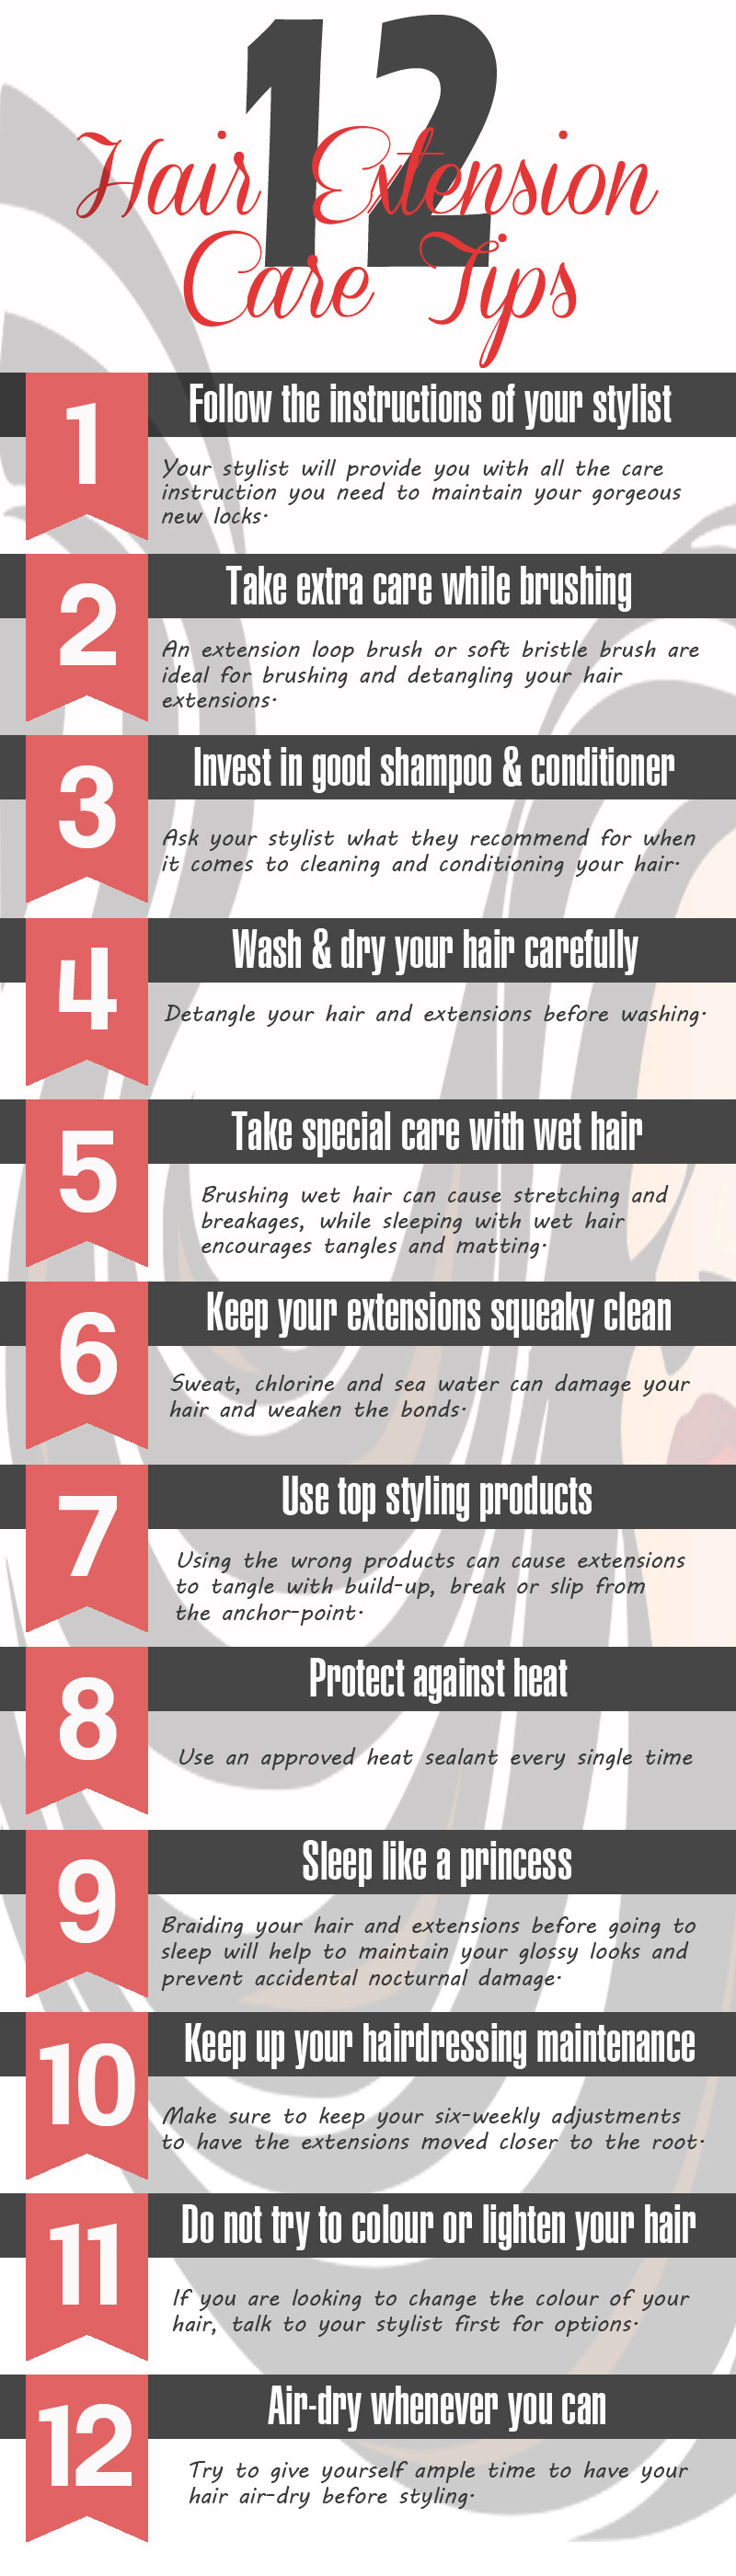 how to take care of your hair extension